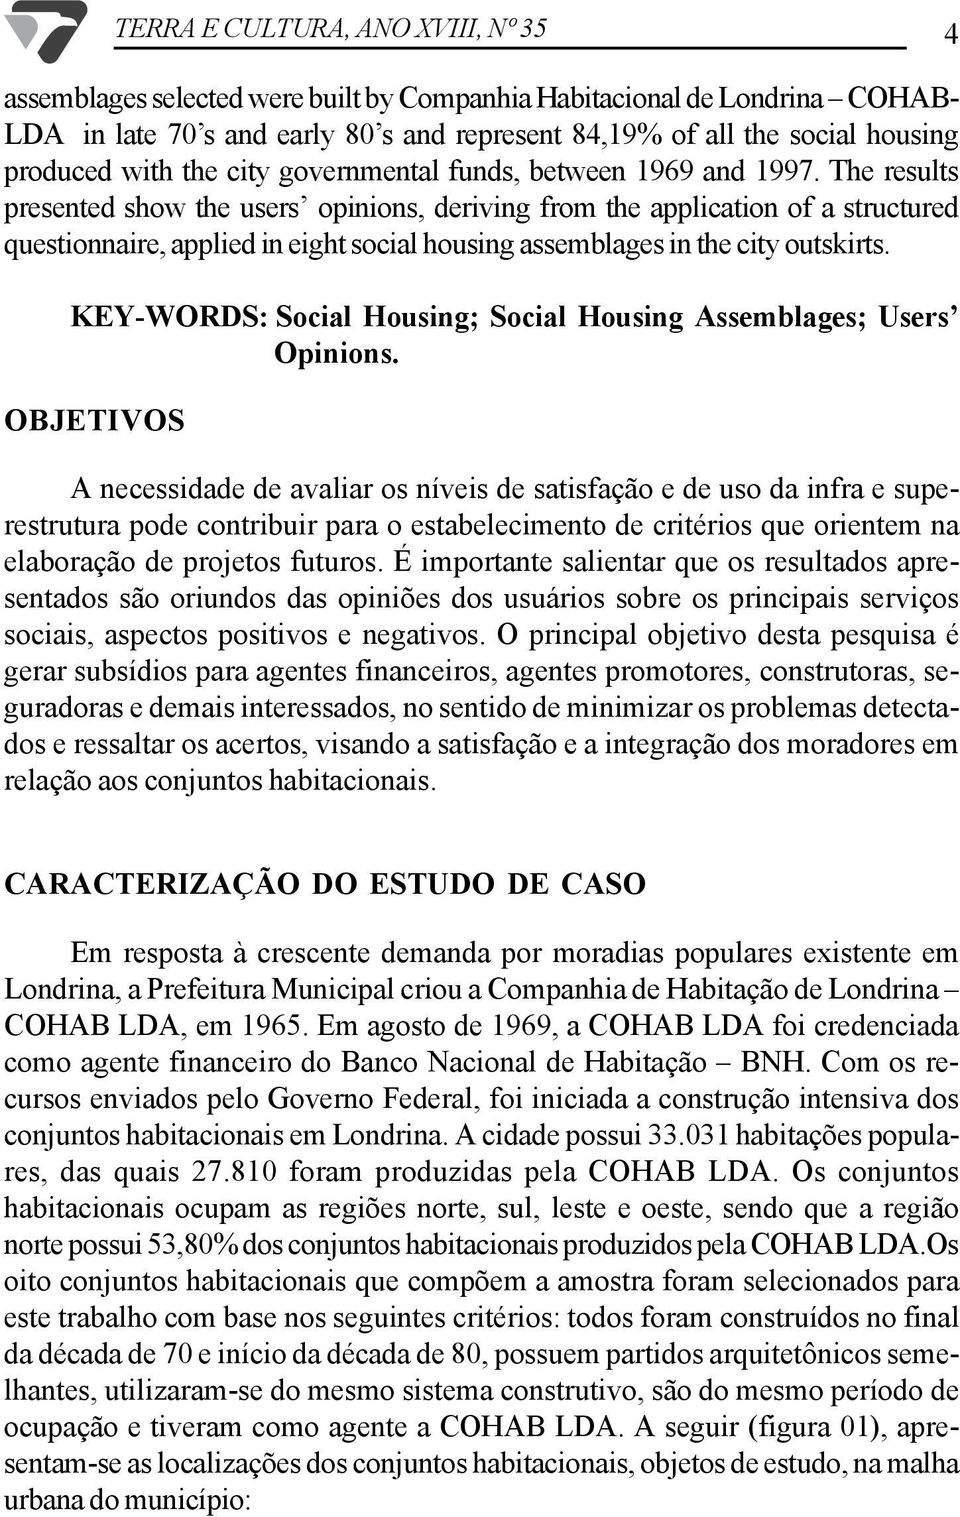 The results presented show the users opinions, deriving from the application of a structured questionnaire, applied in eight social housing assemblages in the city outskirts.